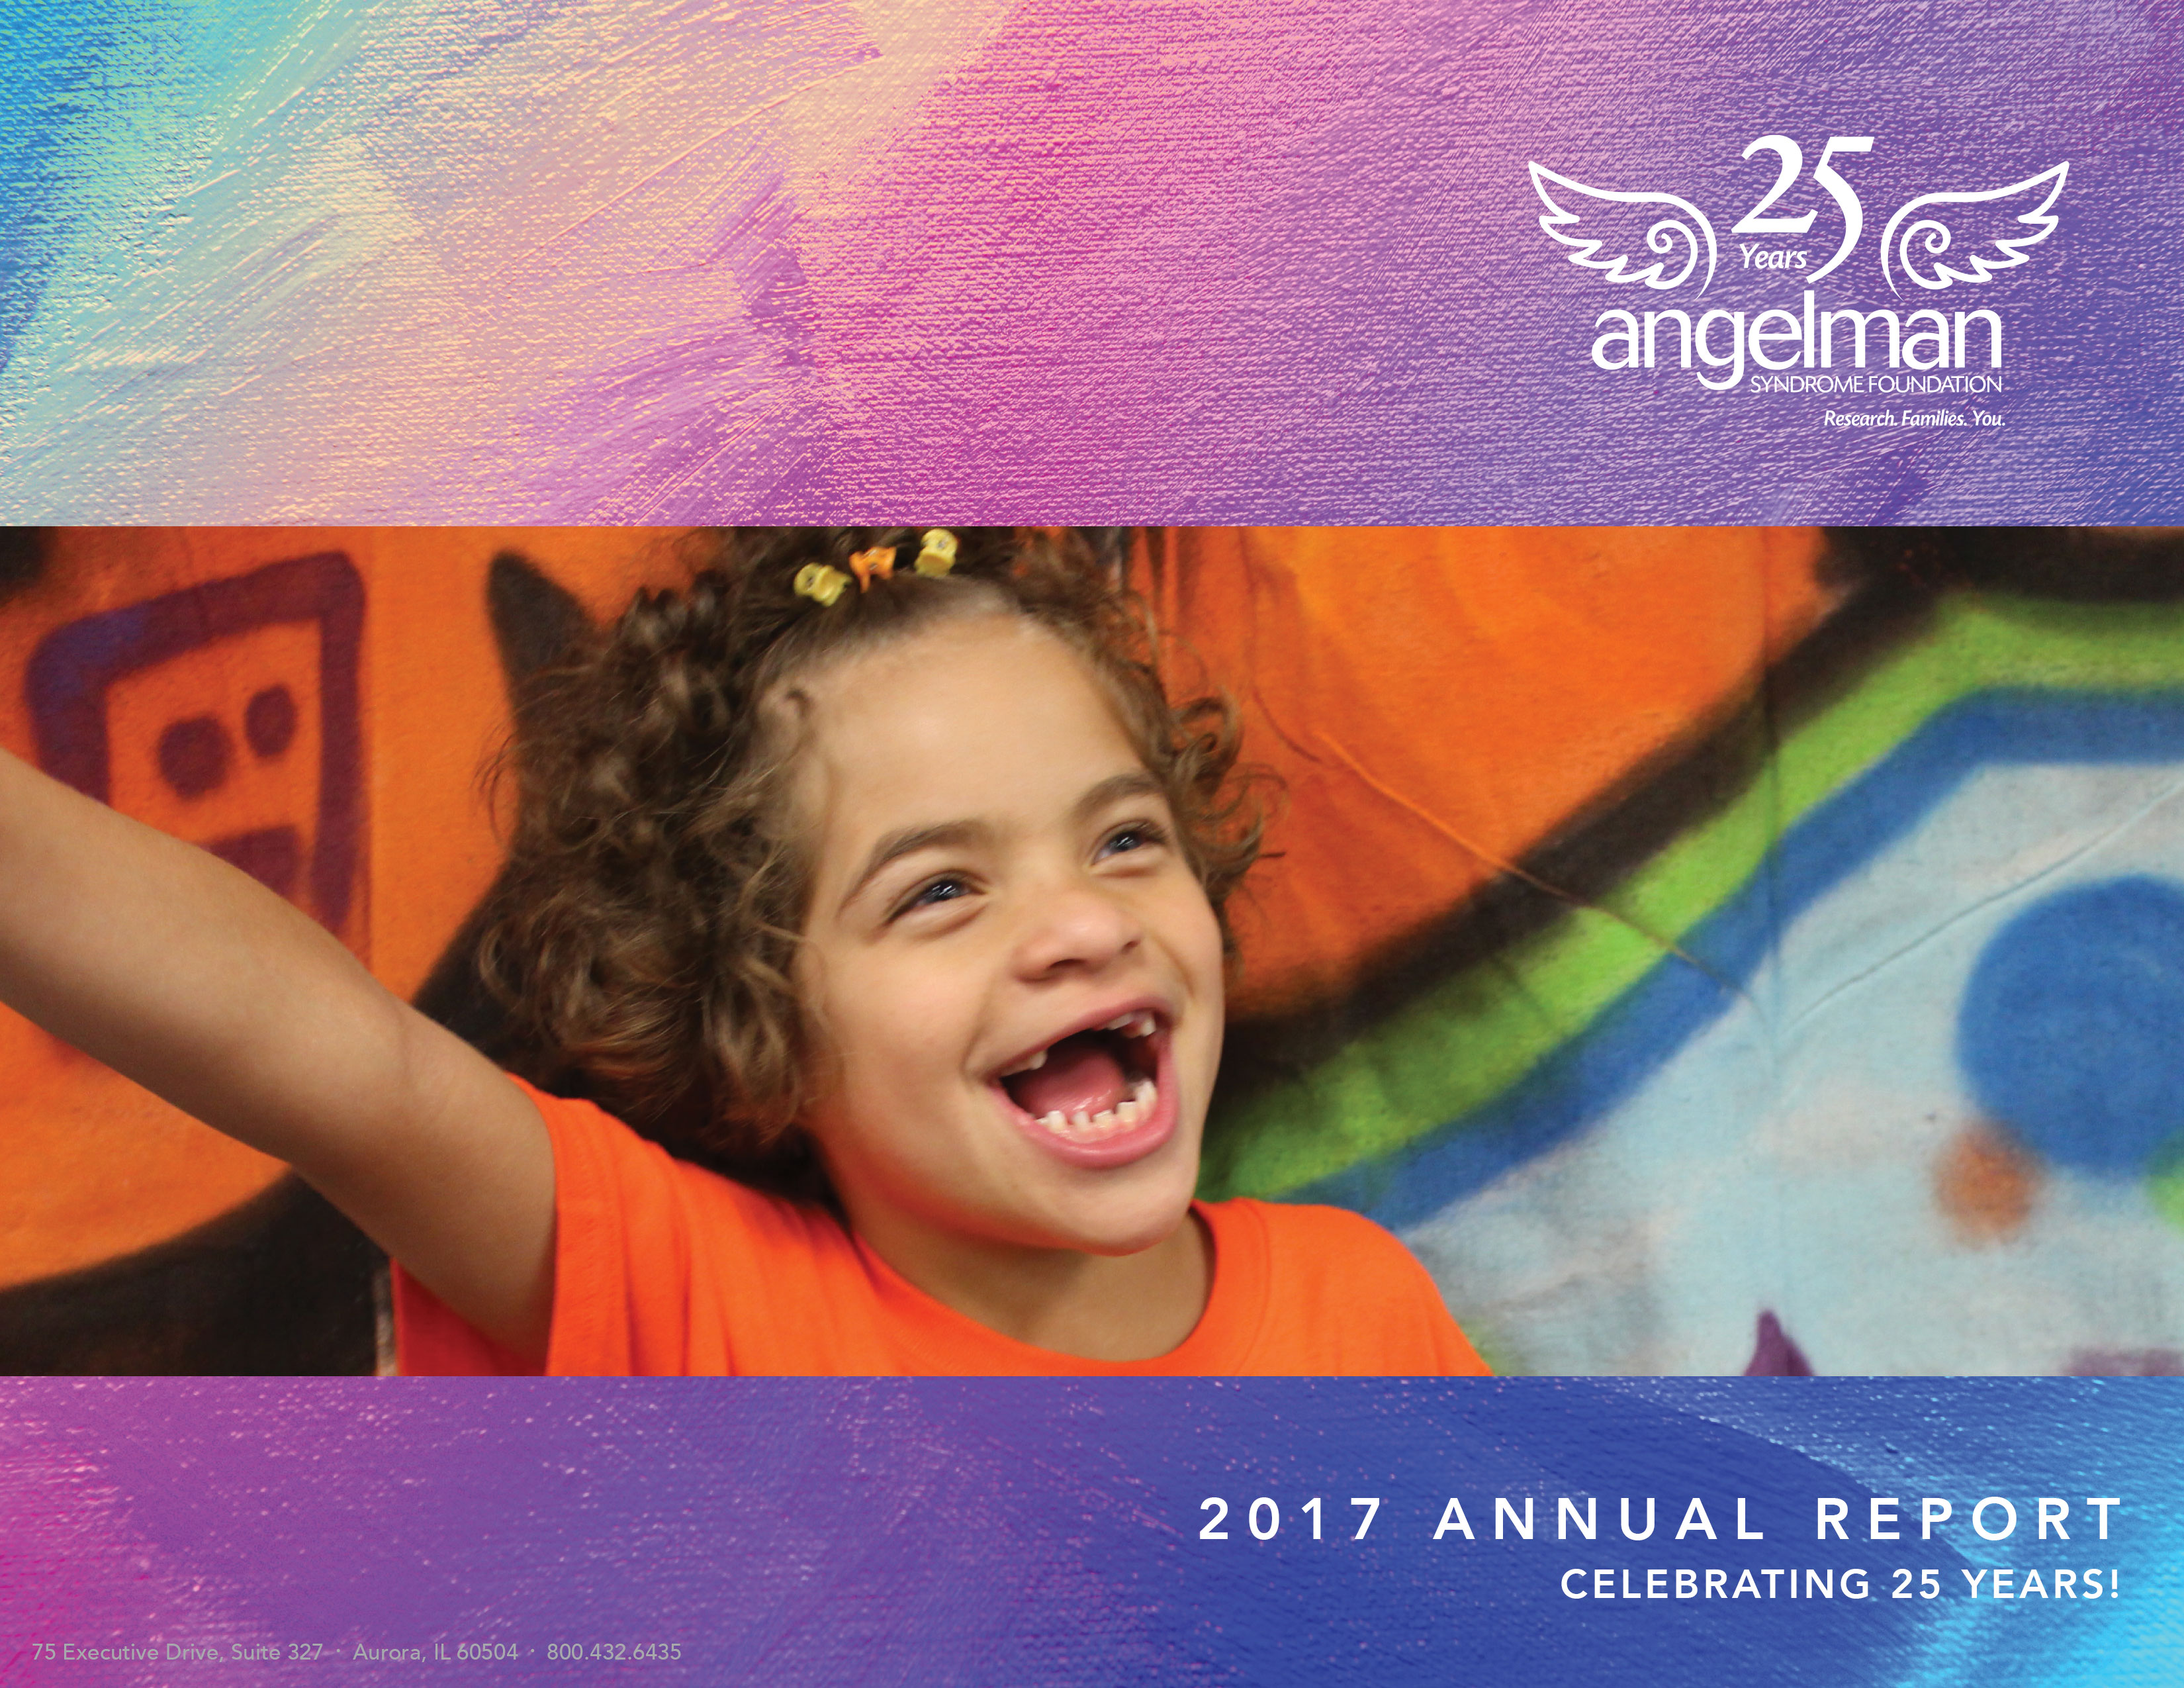 Angelman Syndrome Foundation 2017 Annual Report